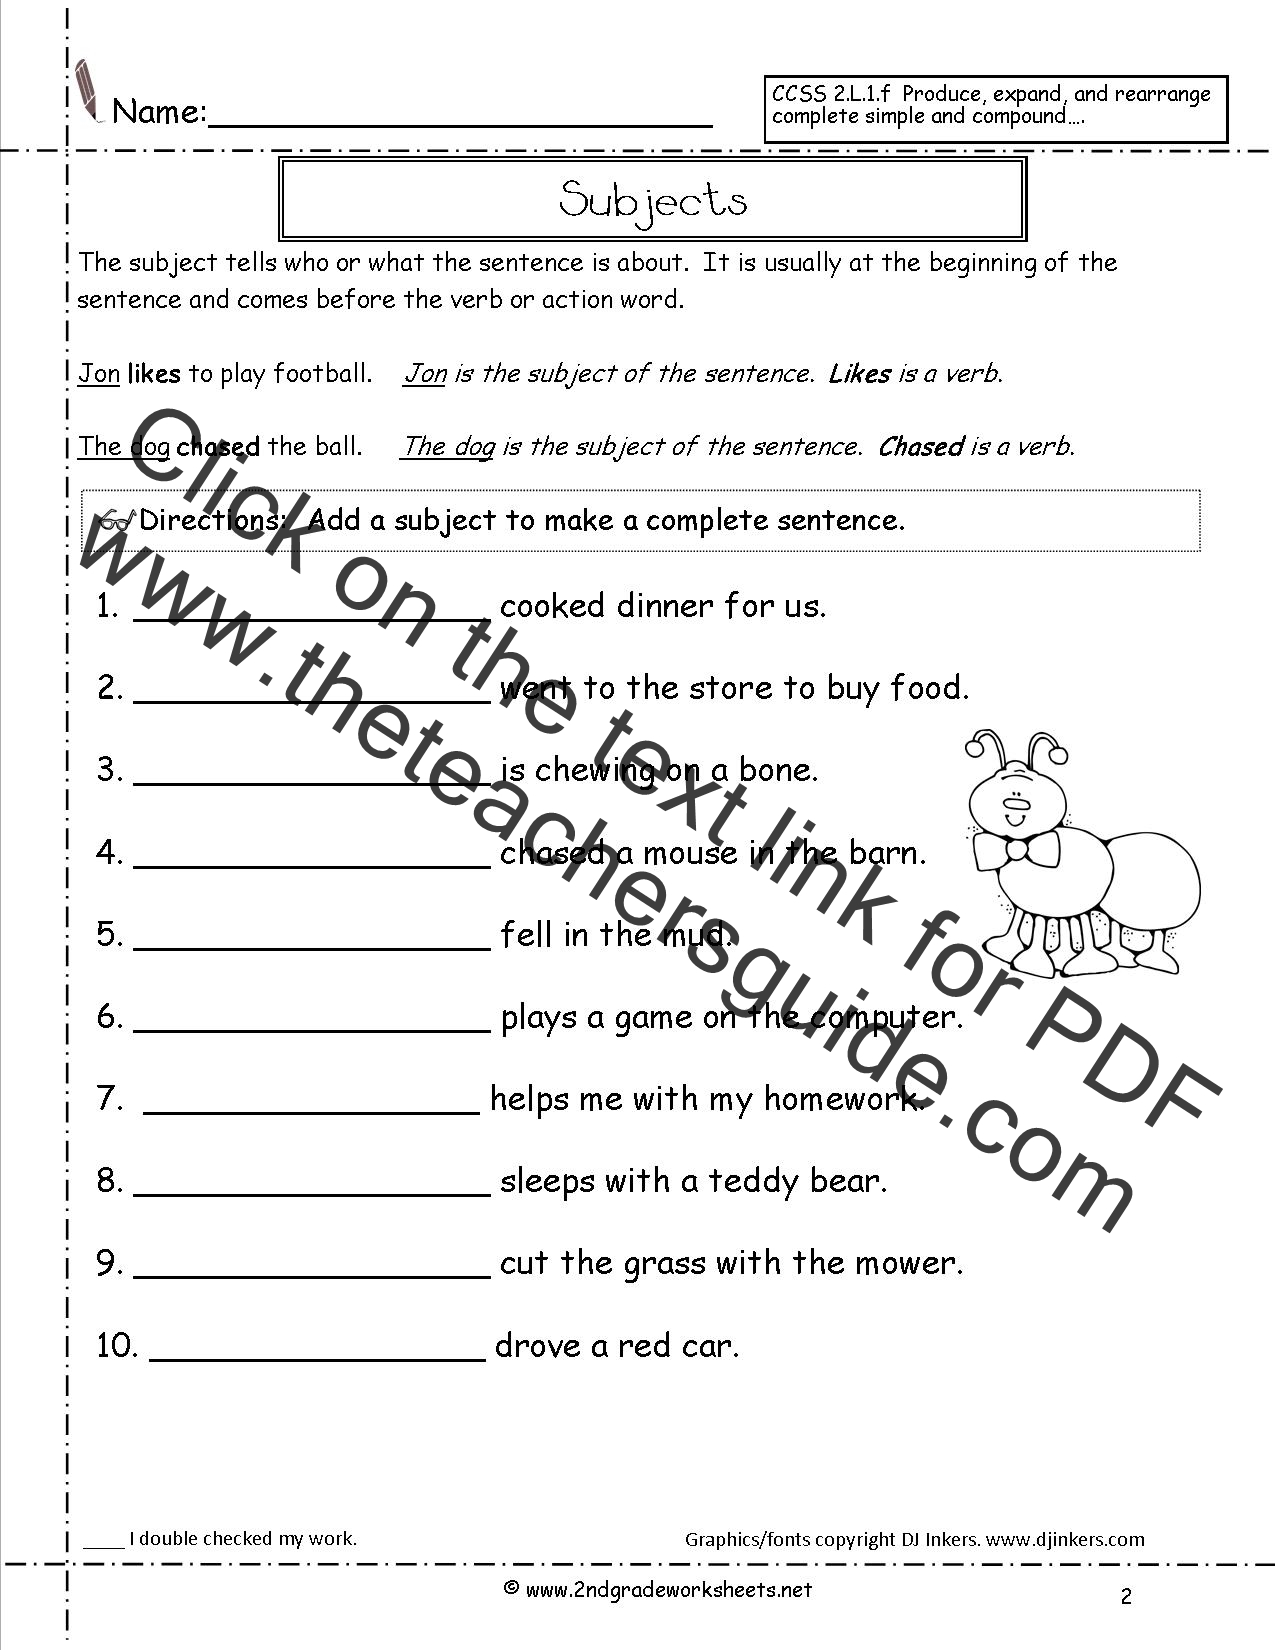 Worksheets 4 Types Of Sentences Worksheet second grade sentences worksheets ccss 2 l 1 f subjects worksheet sentence subjects